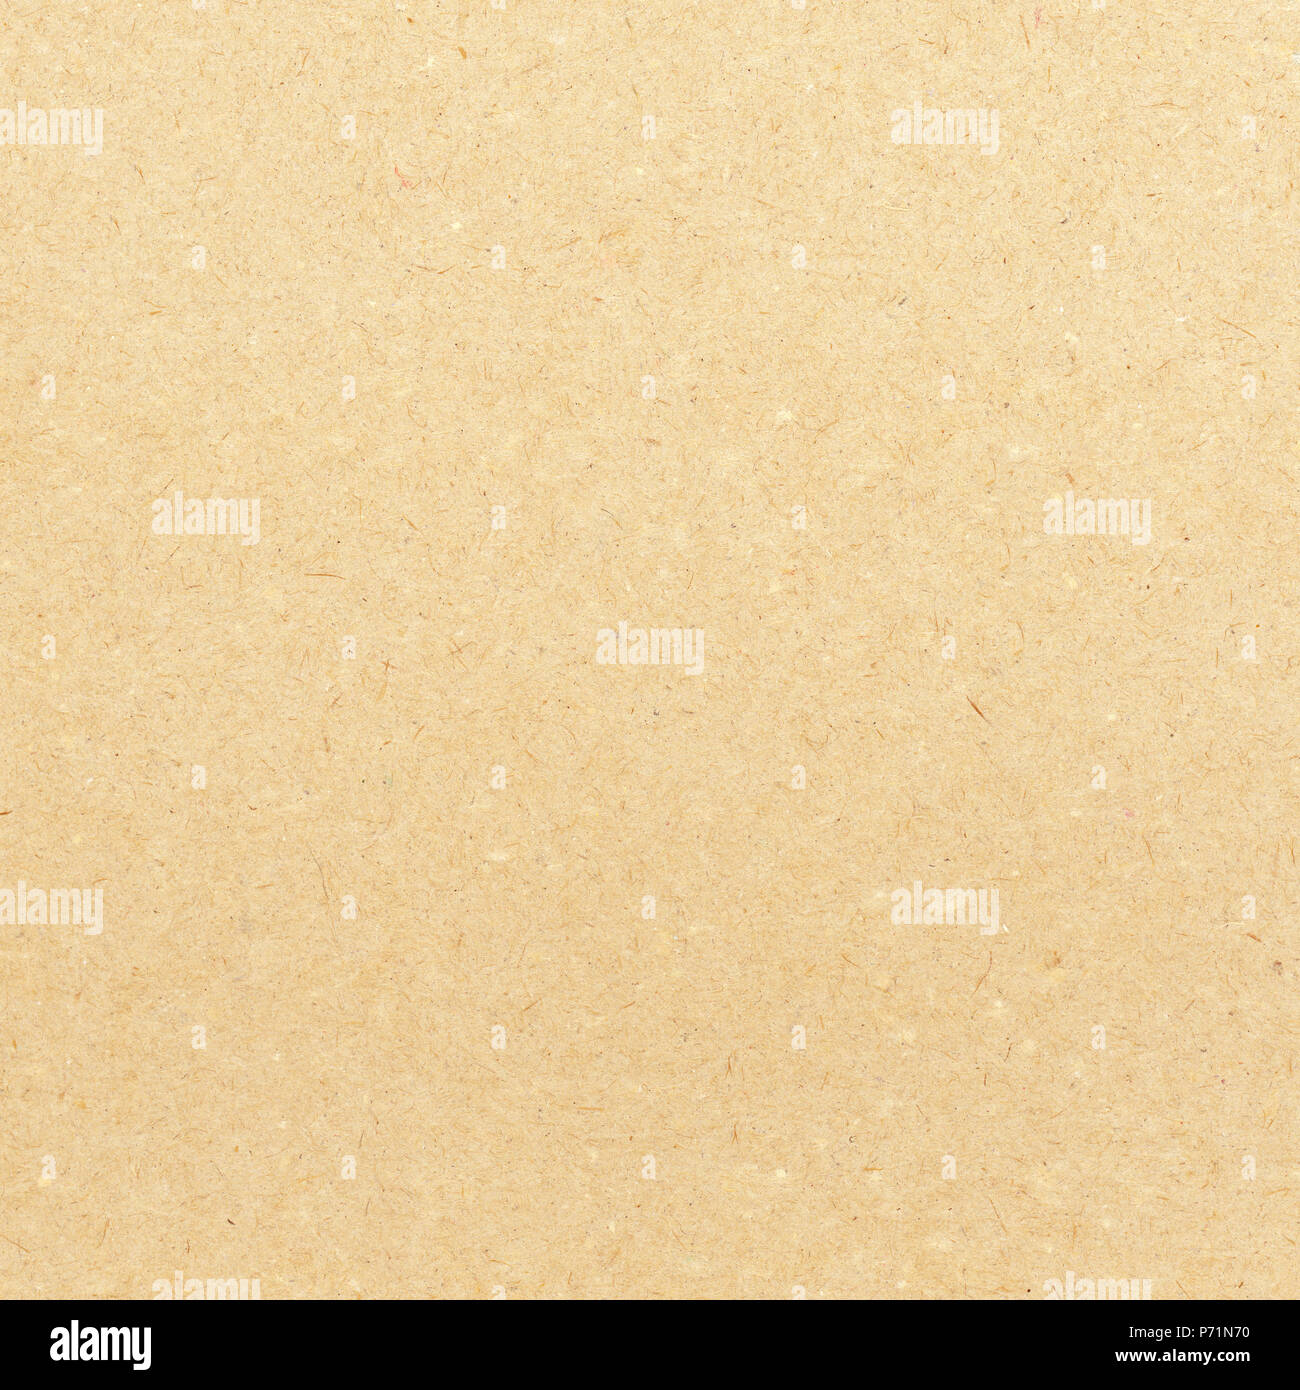 Brown paper texture background - Stock Image